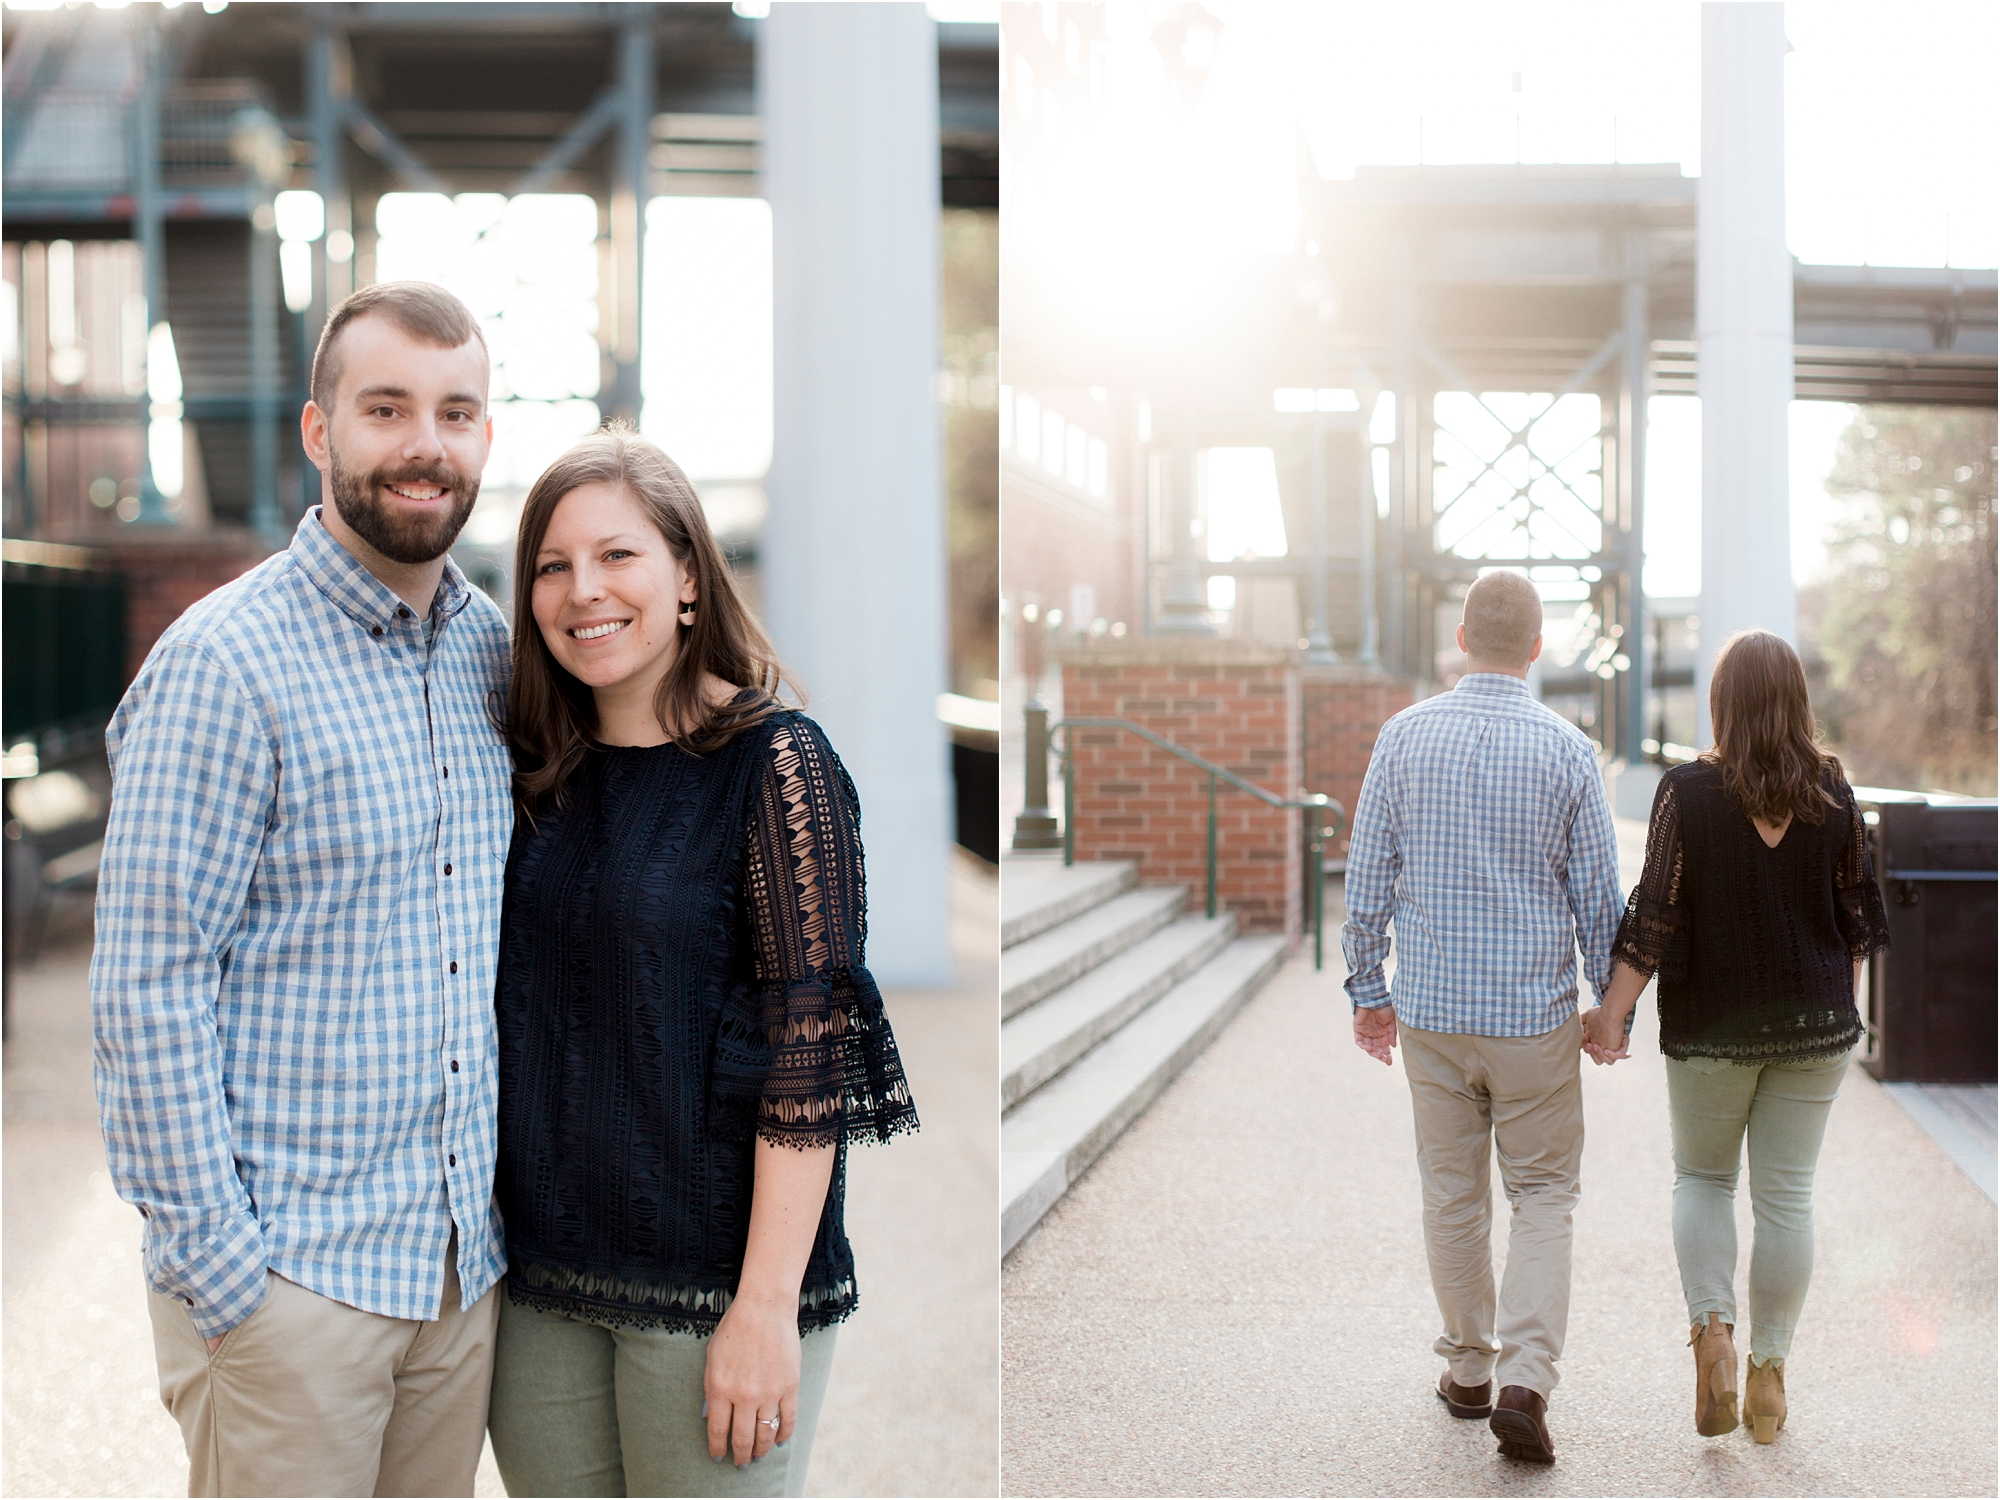 jp-laura-downtown-richmond-va-engagement-photos_0006.jpg